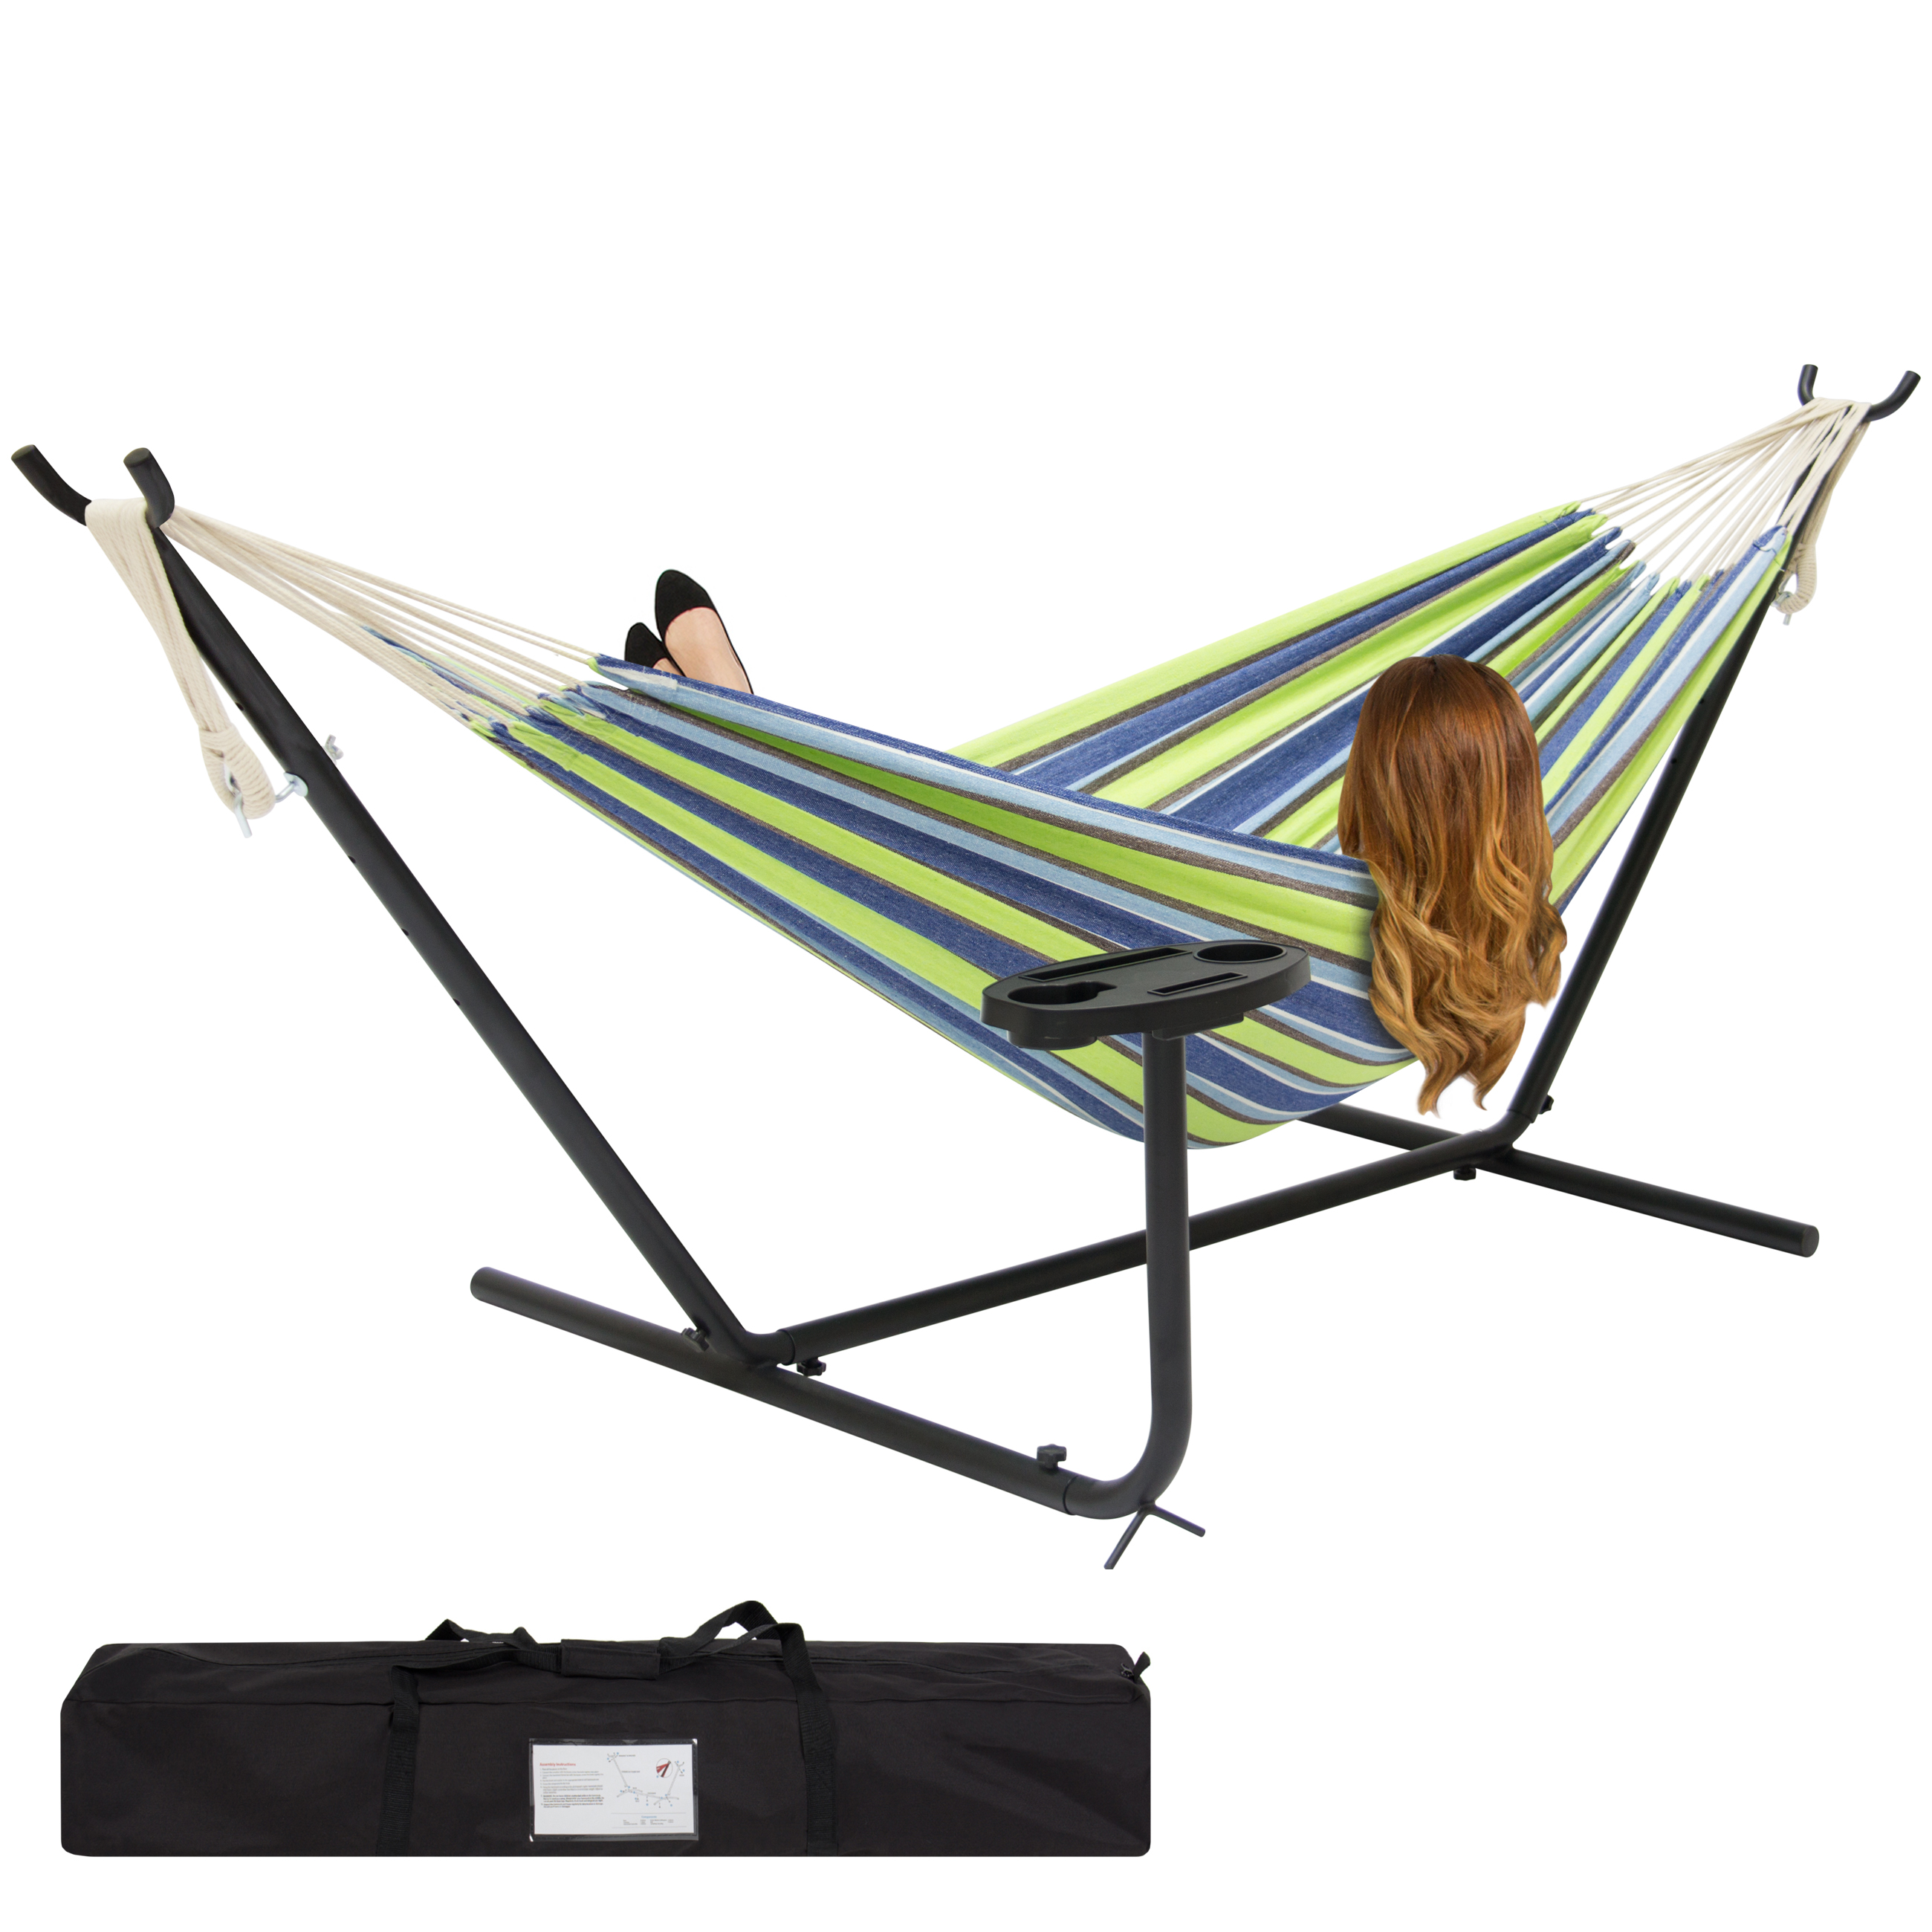 Best Choice Products Outdoor Double Hammock Set w/ Steel Stand, Cup Holder, Tray, and Carrying Bag - Blue/Green Stripe